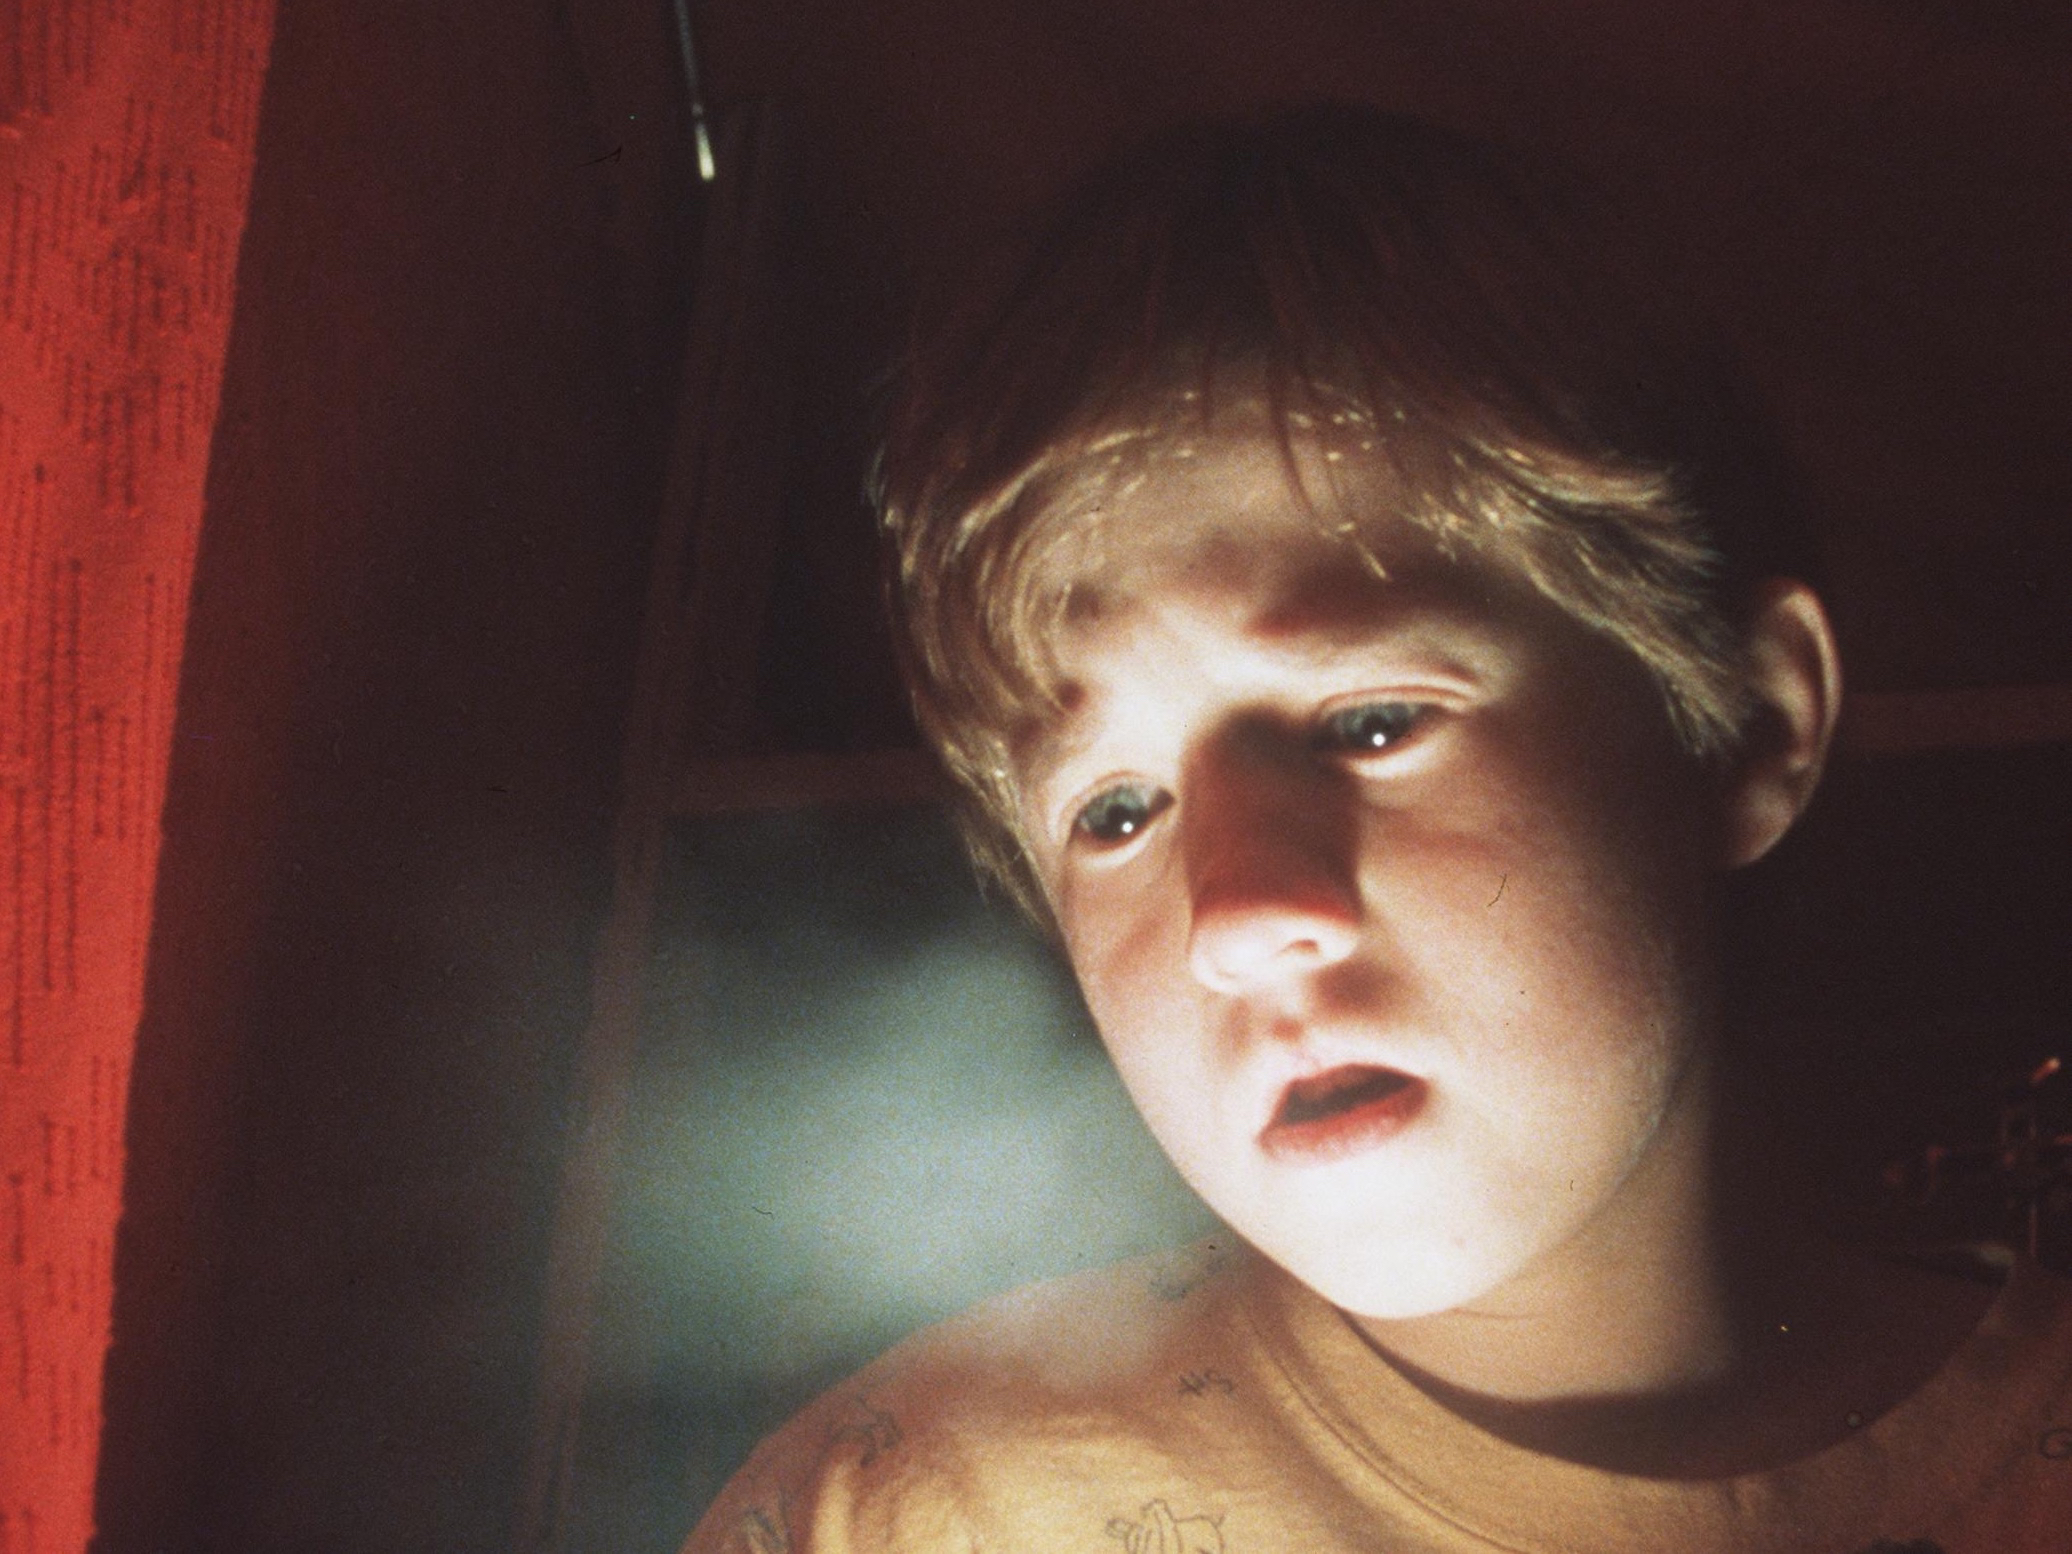 Frightened By His Paranormal Powers 8 Year Old Cole Sear (Haley Joel Osment Is Too Young To Unders